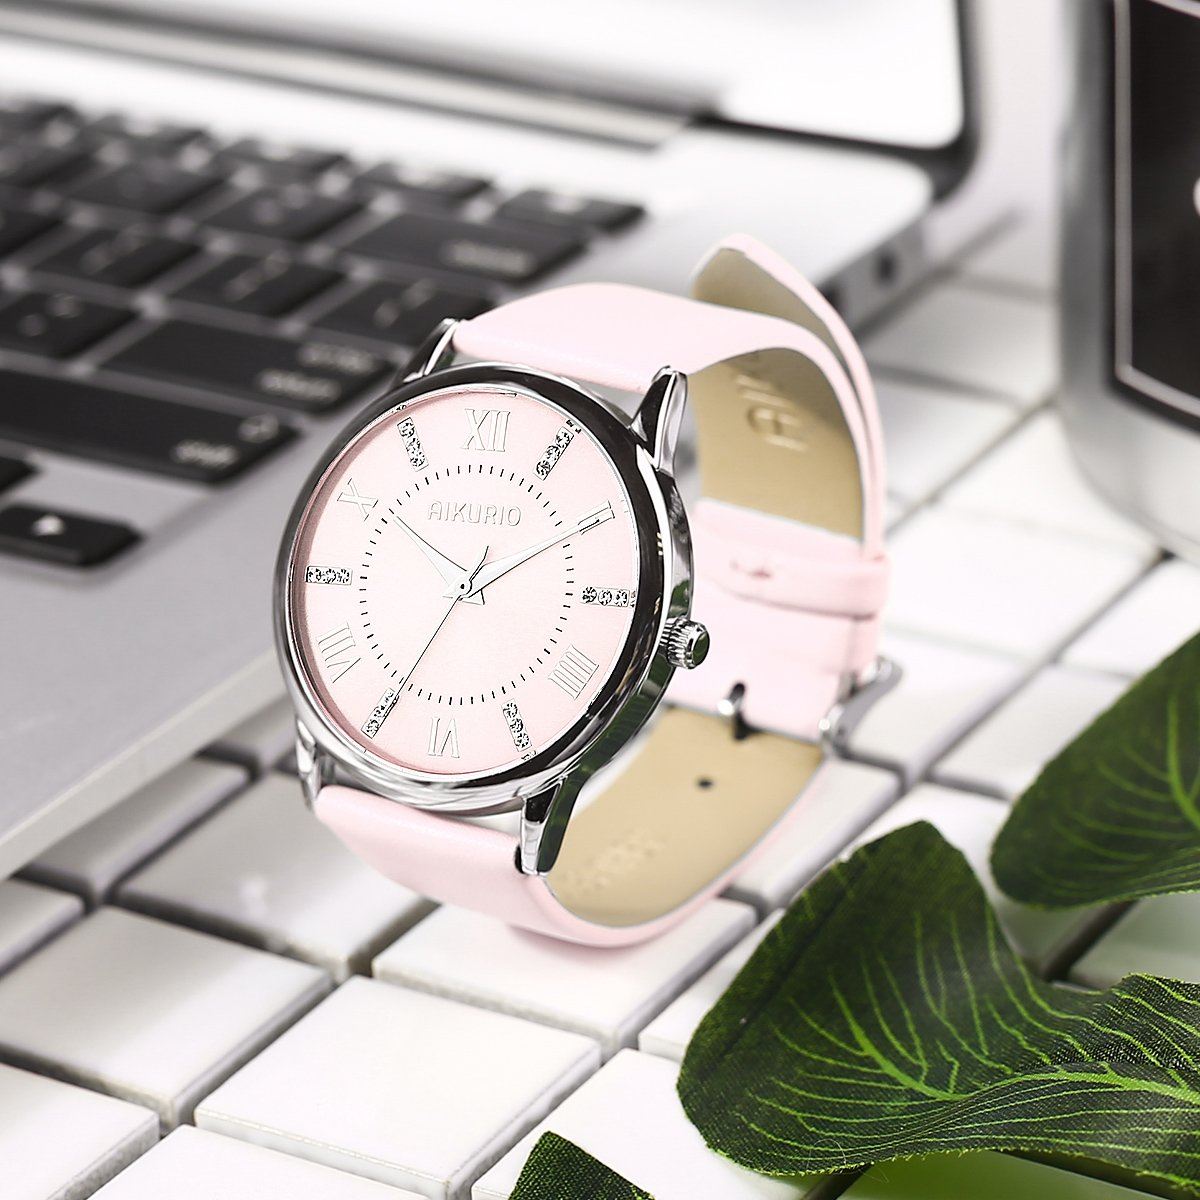 AIKURIO Women Ladies Wrist Watch Waterproof Quartz Watch with Crystal Dial Clock Leather for Female Luxury Fashion Business Classic (Pink) by AIKURIO (Image #6)